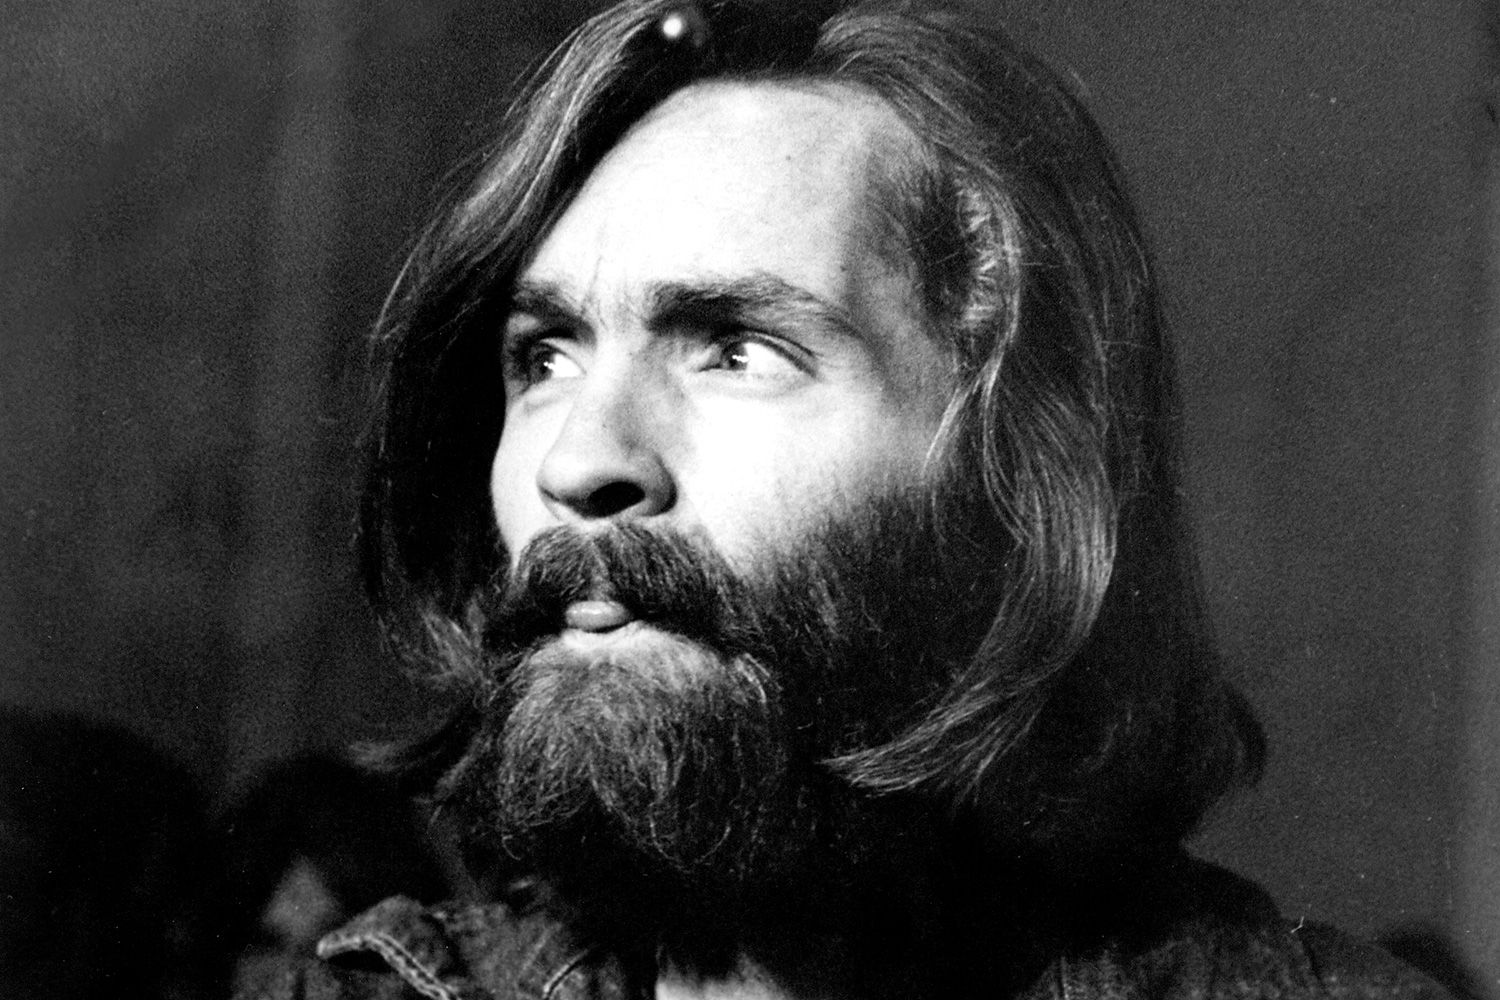 Candy Manson Sex And Submission Simple pictures of charles manson and the manson family